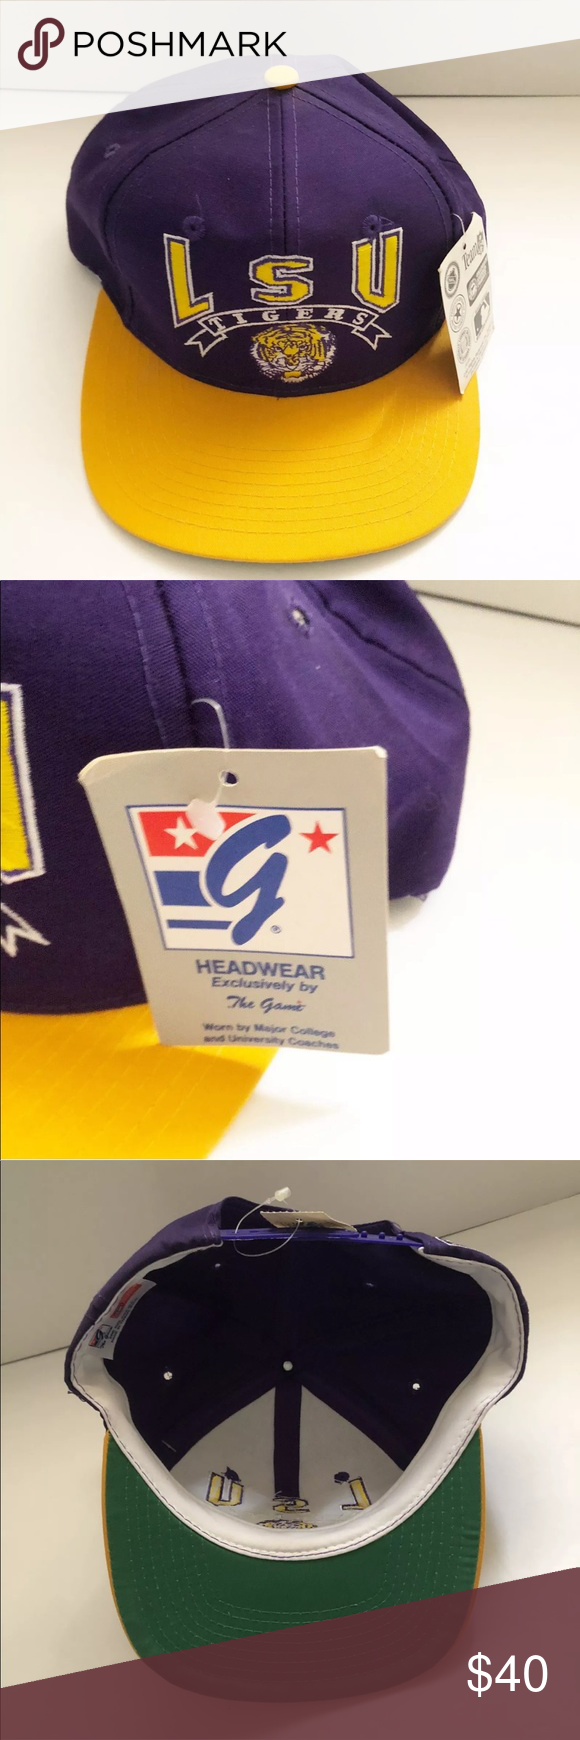 the latest b8006 c9ae2 Lsu Tigers 90s VIntage Snapback Hat Original Lsu Tigers 90s VIntage  Snapback Hat Original The Gamit Brand New With Tags NCAA the gammit  Accessories Hats